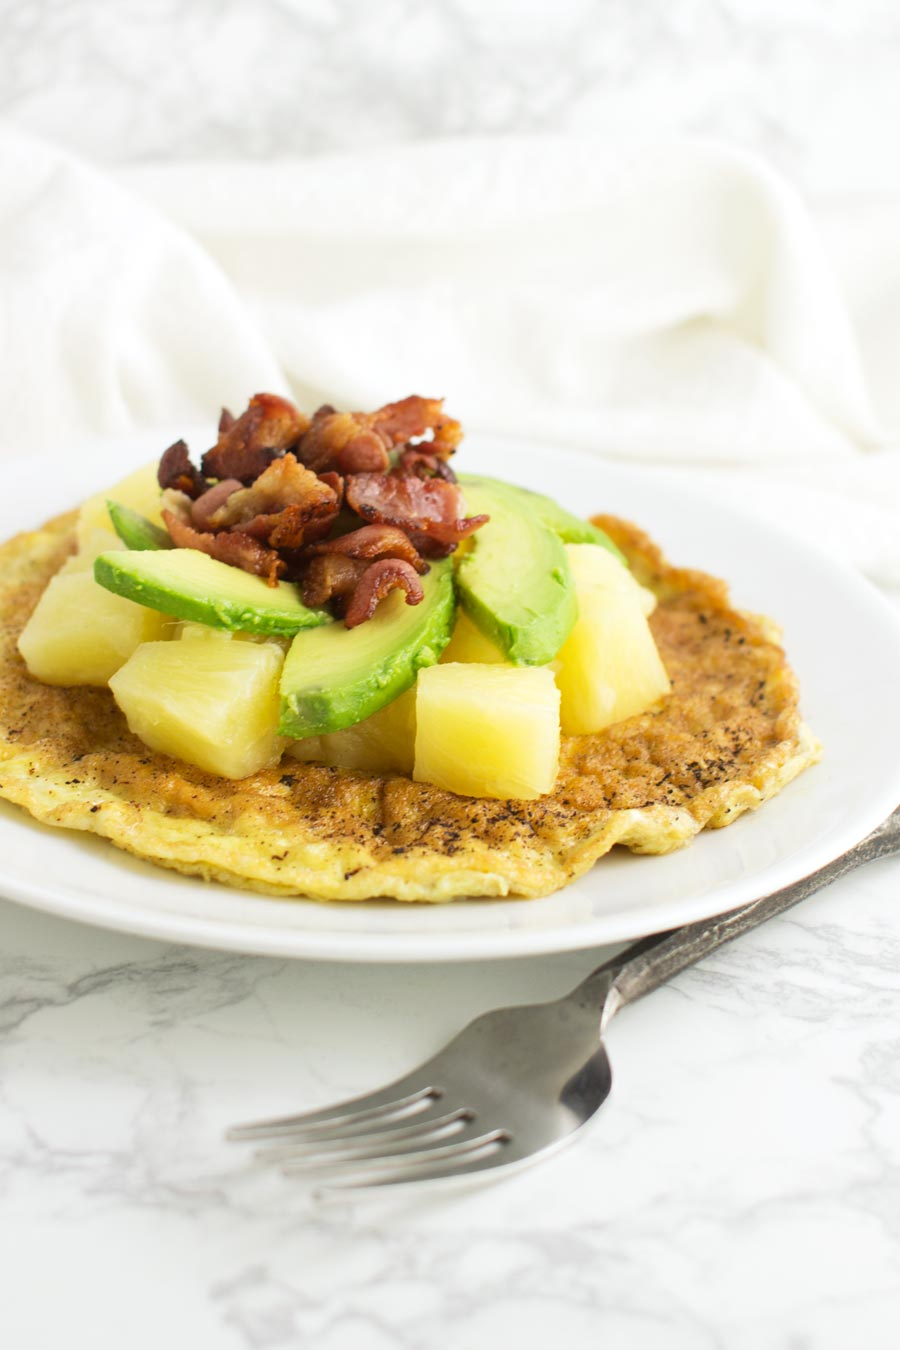 Pineapple Bacon Omelet recipe from acleanplate.com #paleo #aip #glutenfree